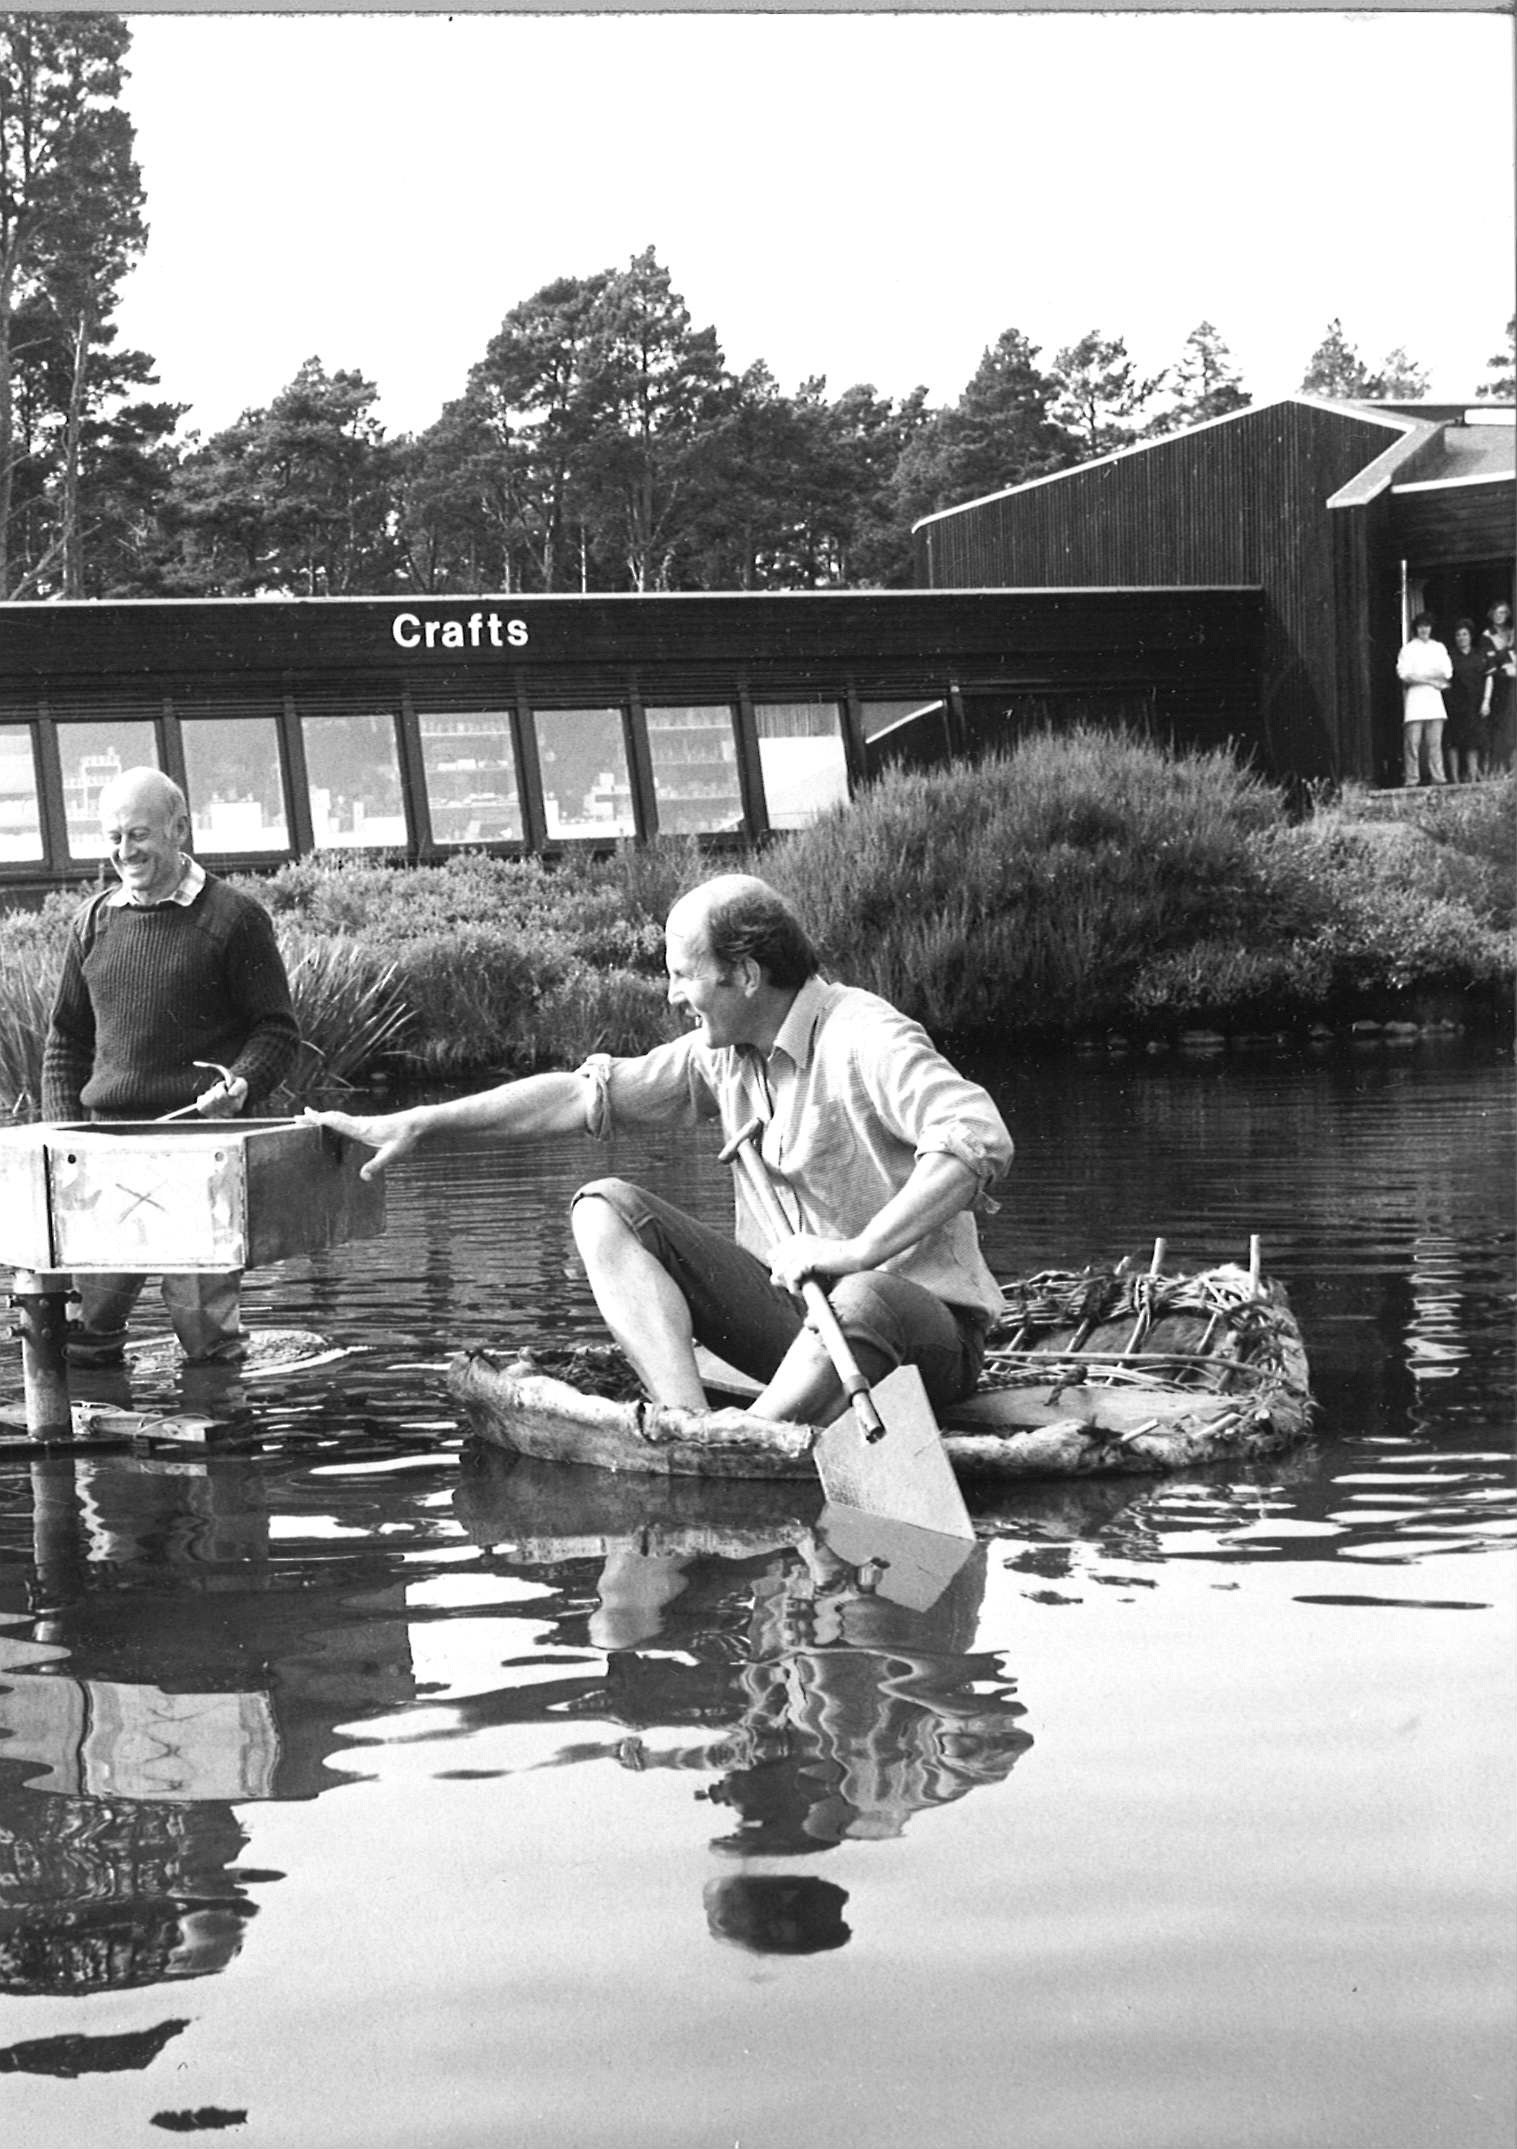 New sculpture in pond at Landmark. 1983. In the picture are Landmark owner David Hayes and handyman Granville Brown